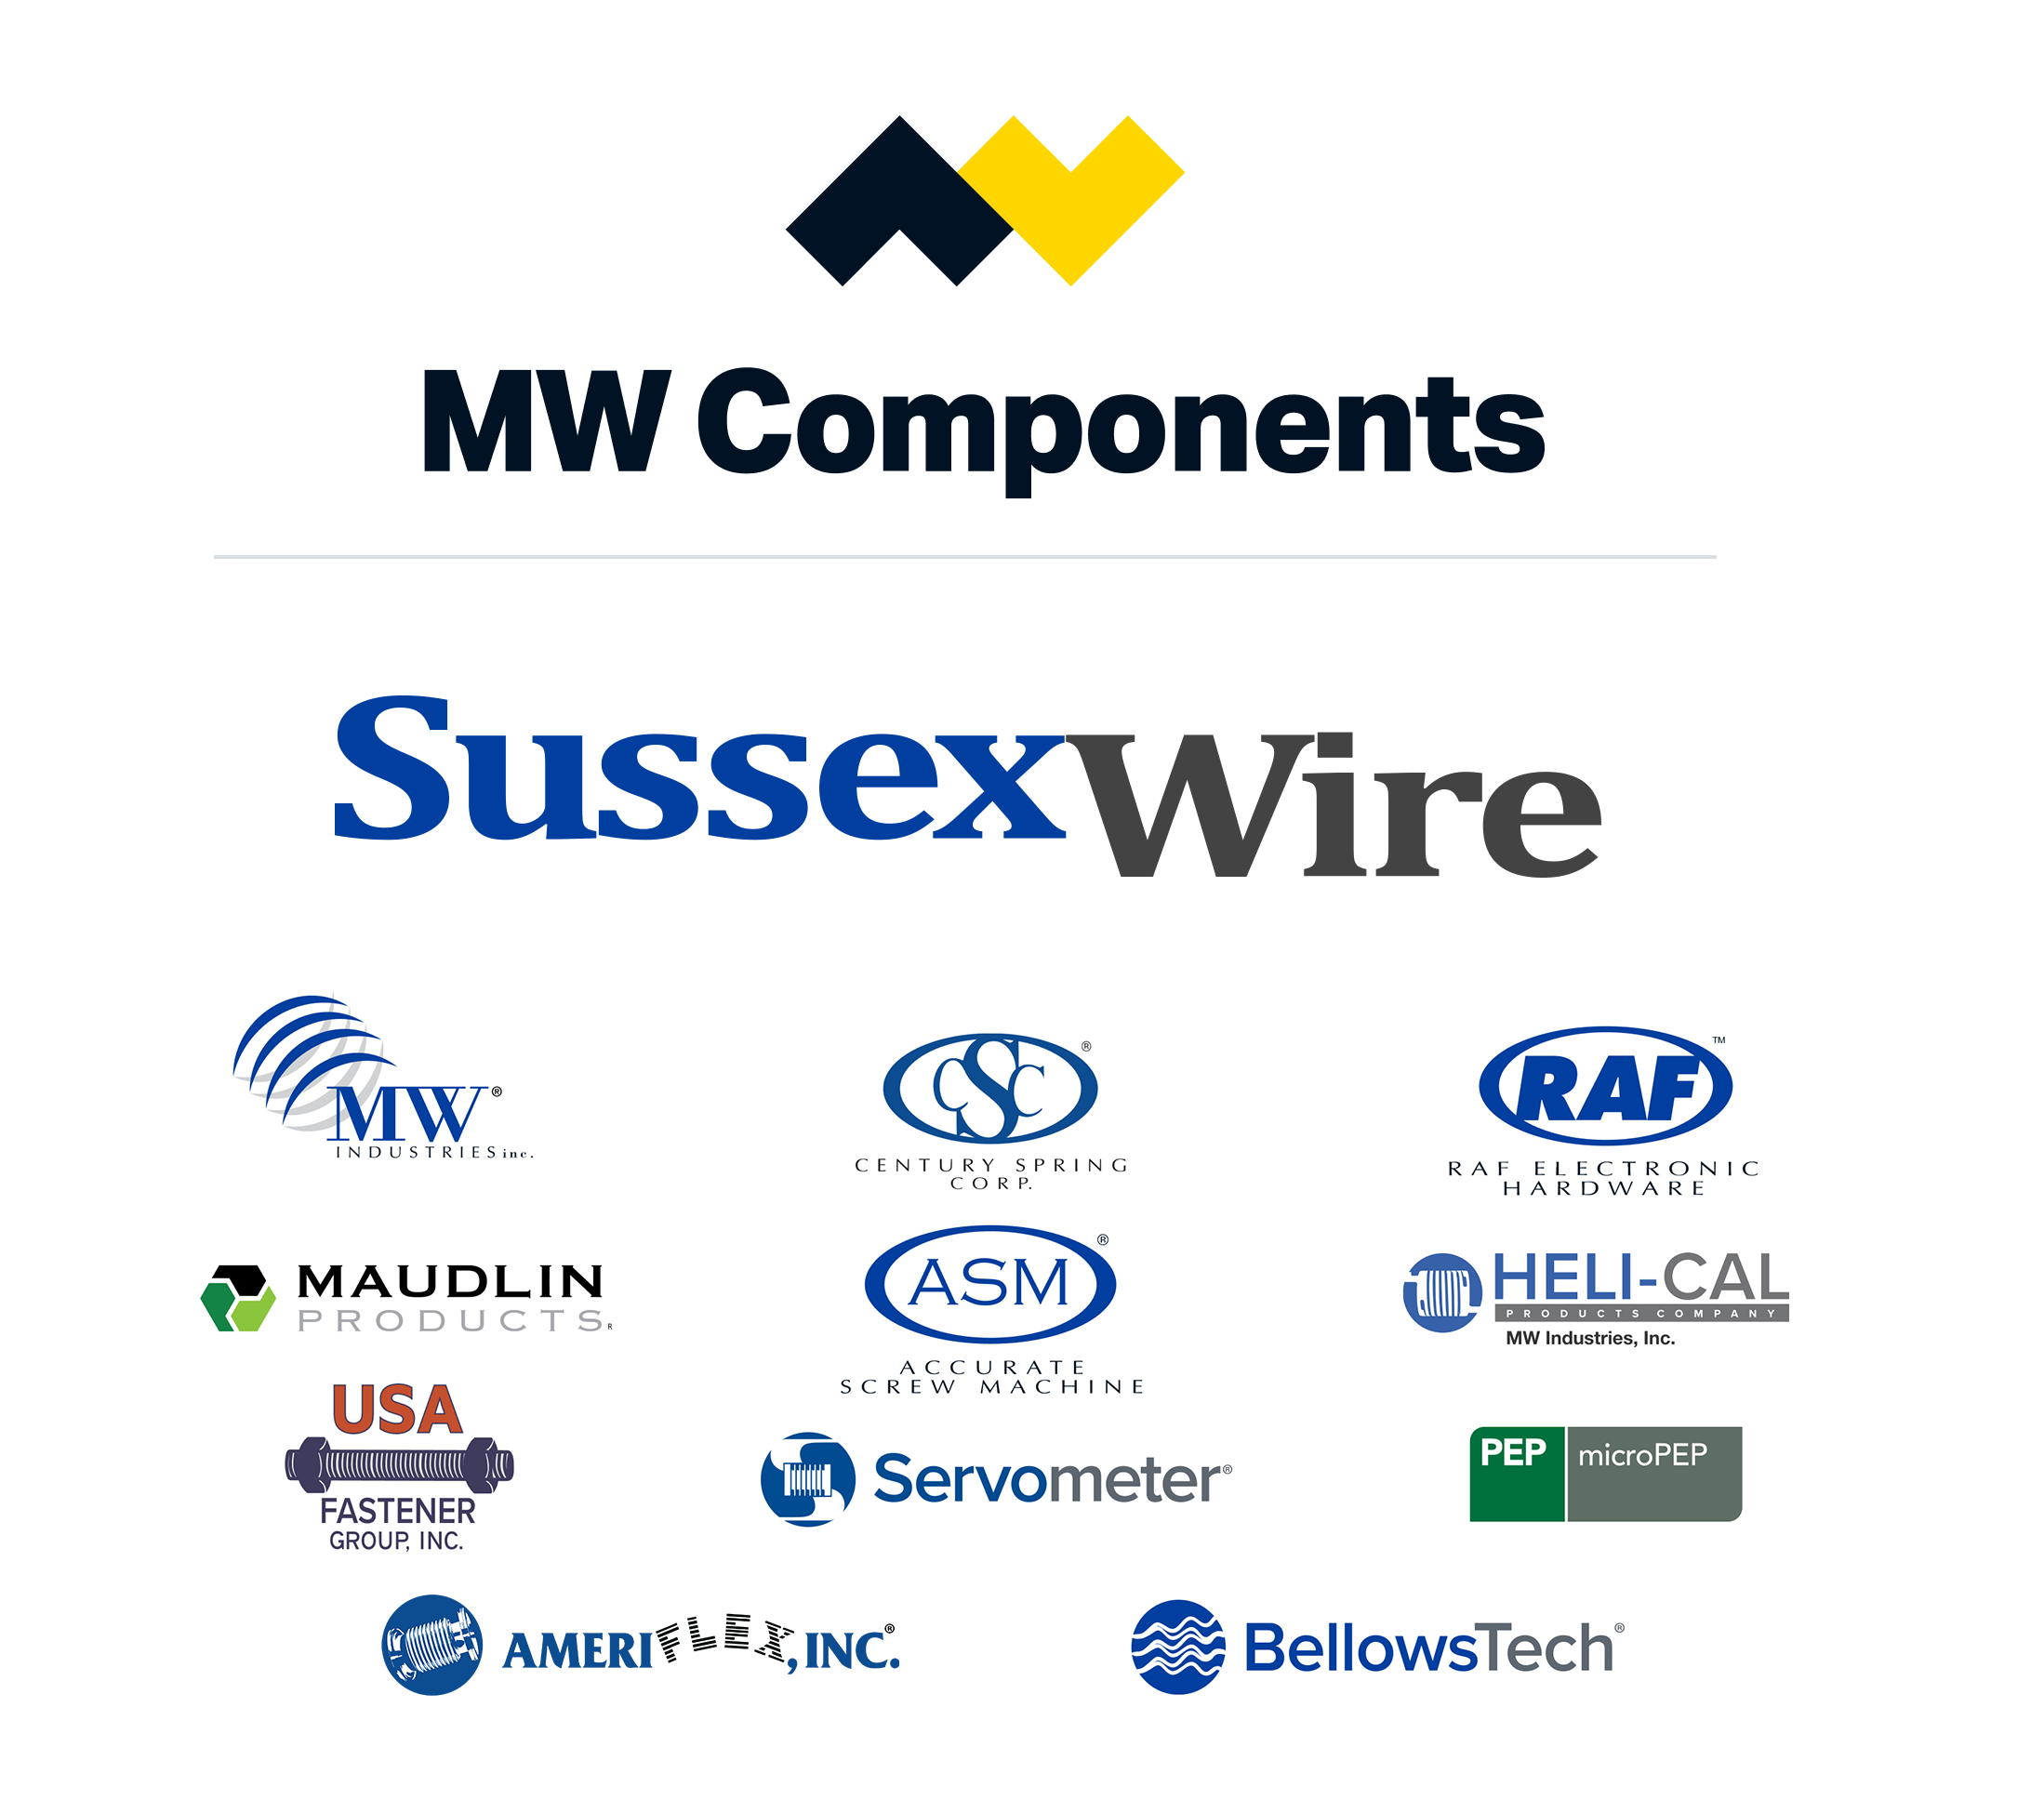 Sussex Wire is now part of MW Components!